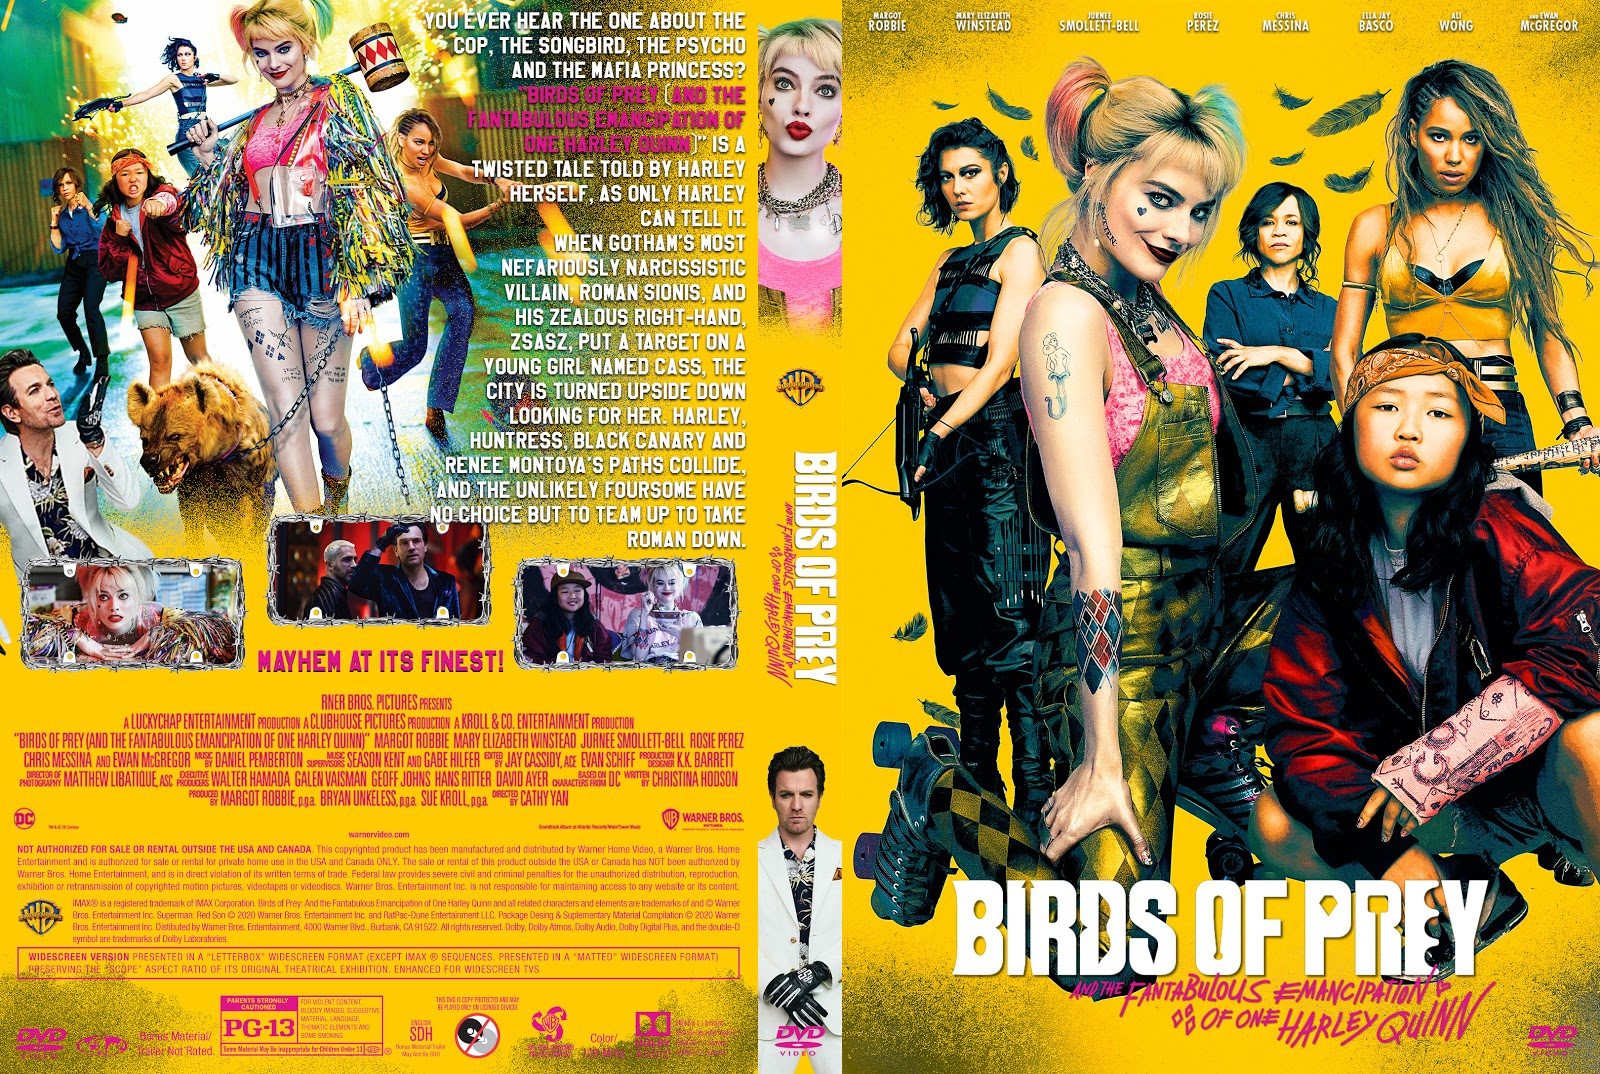 Birds Of Prey And The Fantabulous Emancipation Of One Harley Quinn Harley Quinn Birds Of Prey Dvd Cover Cover Addict Free Dvd Bluray Covers And Movie Posters